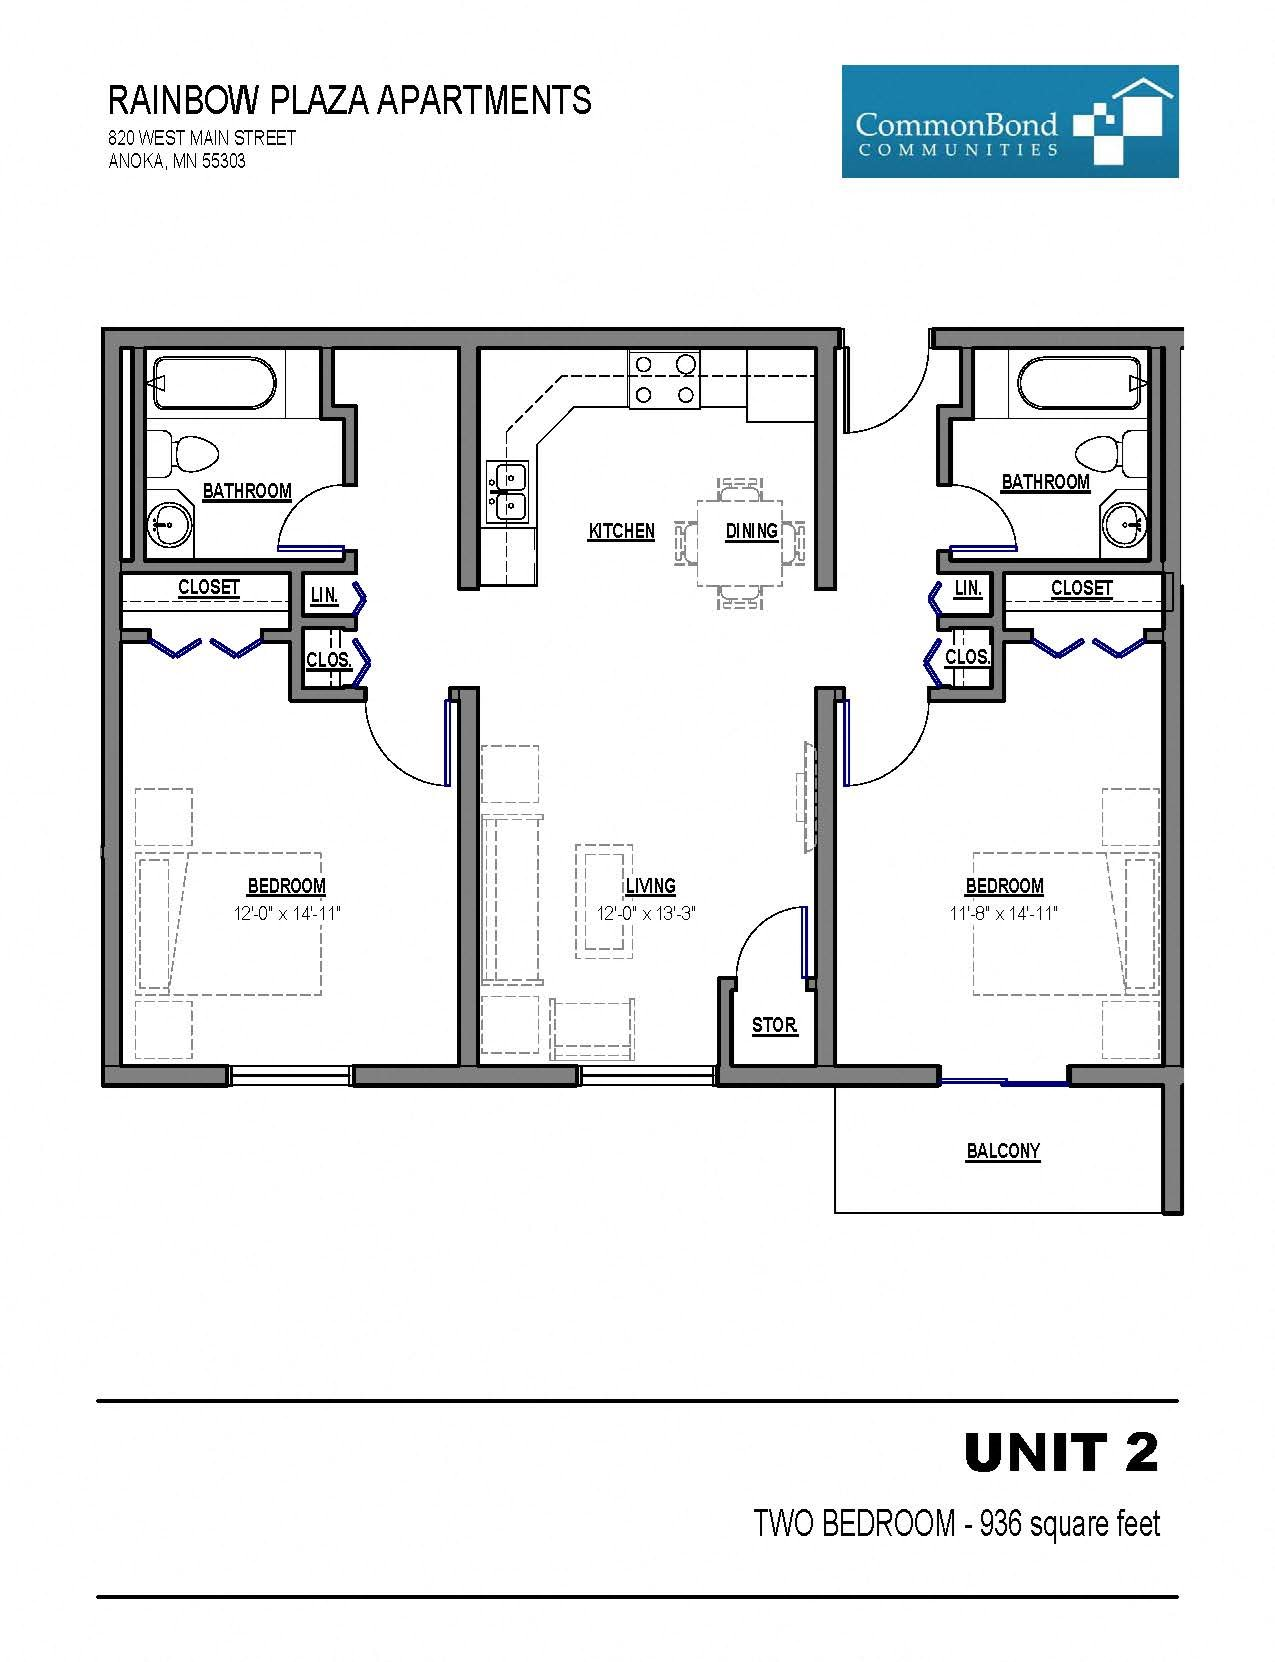 Unit 2 Floor Plan 2